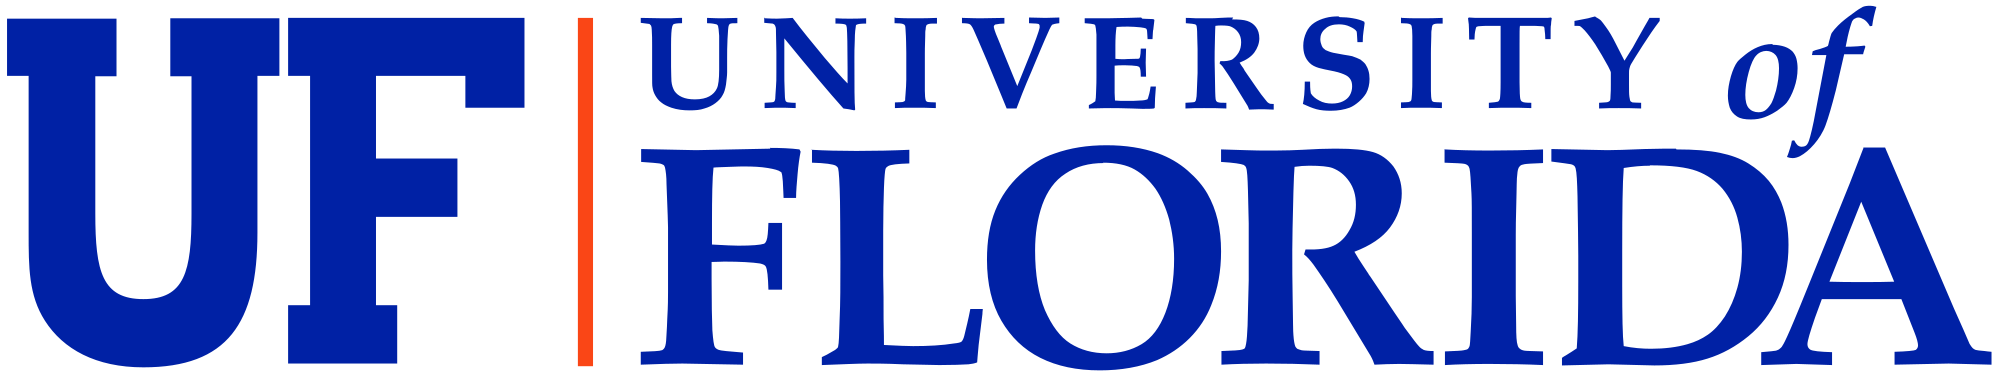 University of florida logo png. File svg wikimedia commons